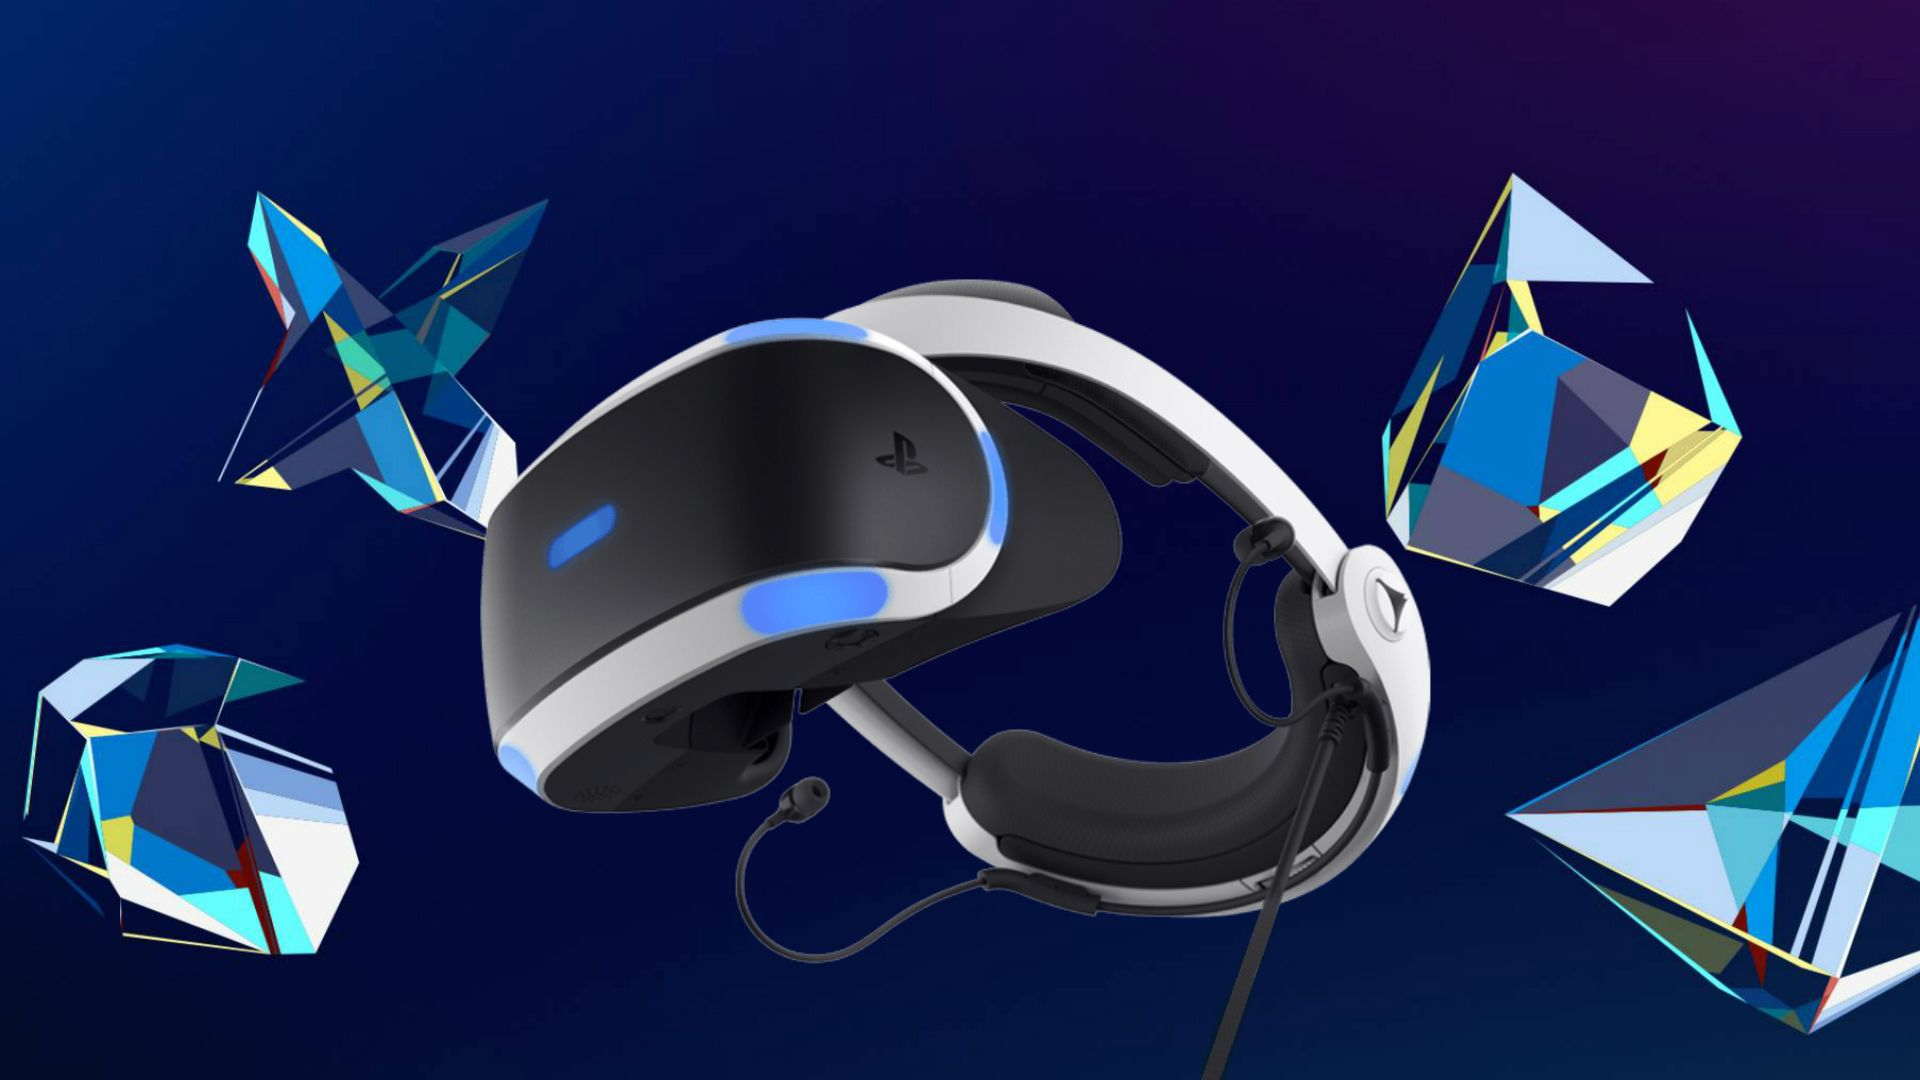 Well... they did it. PSVR2 has finally been confirmed by Sony's Senior VP of Platform Planning & Management Hideaki Nishino.